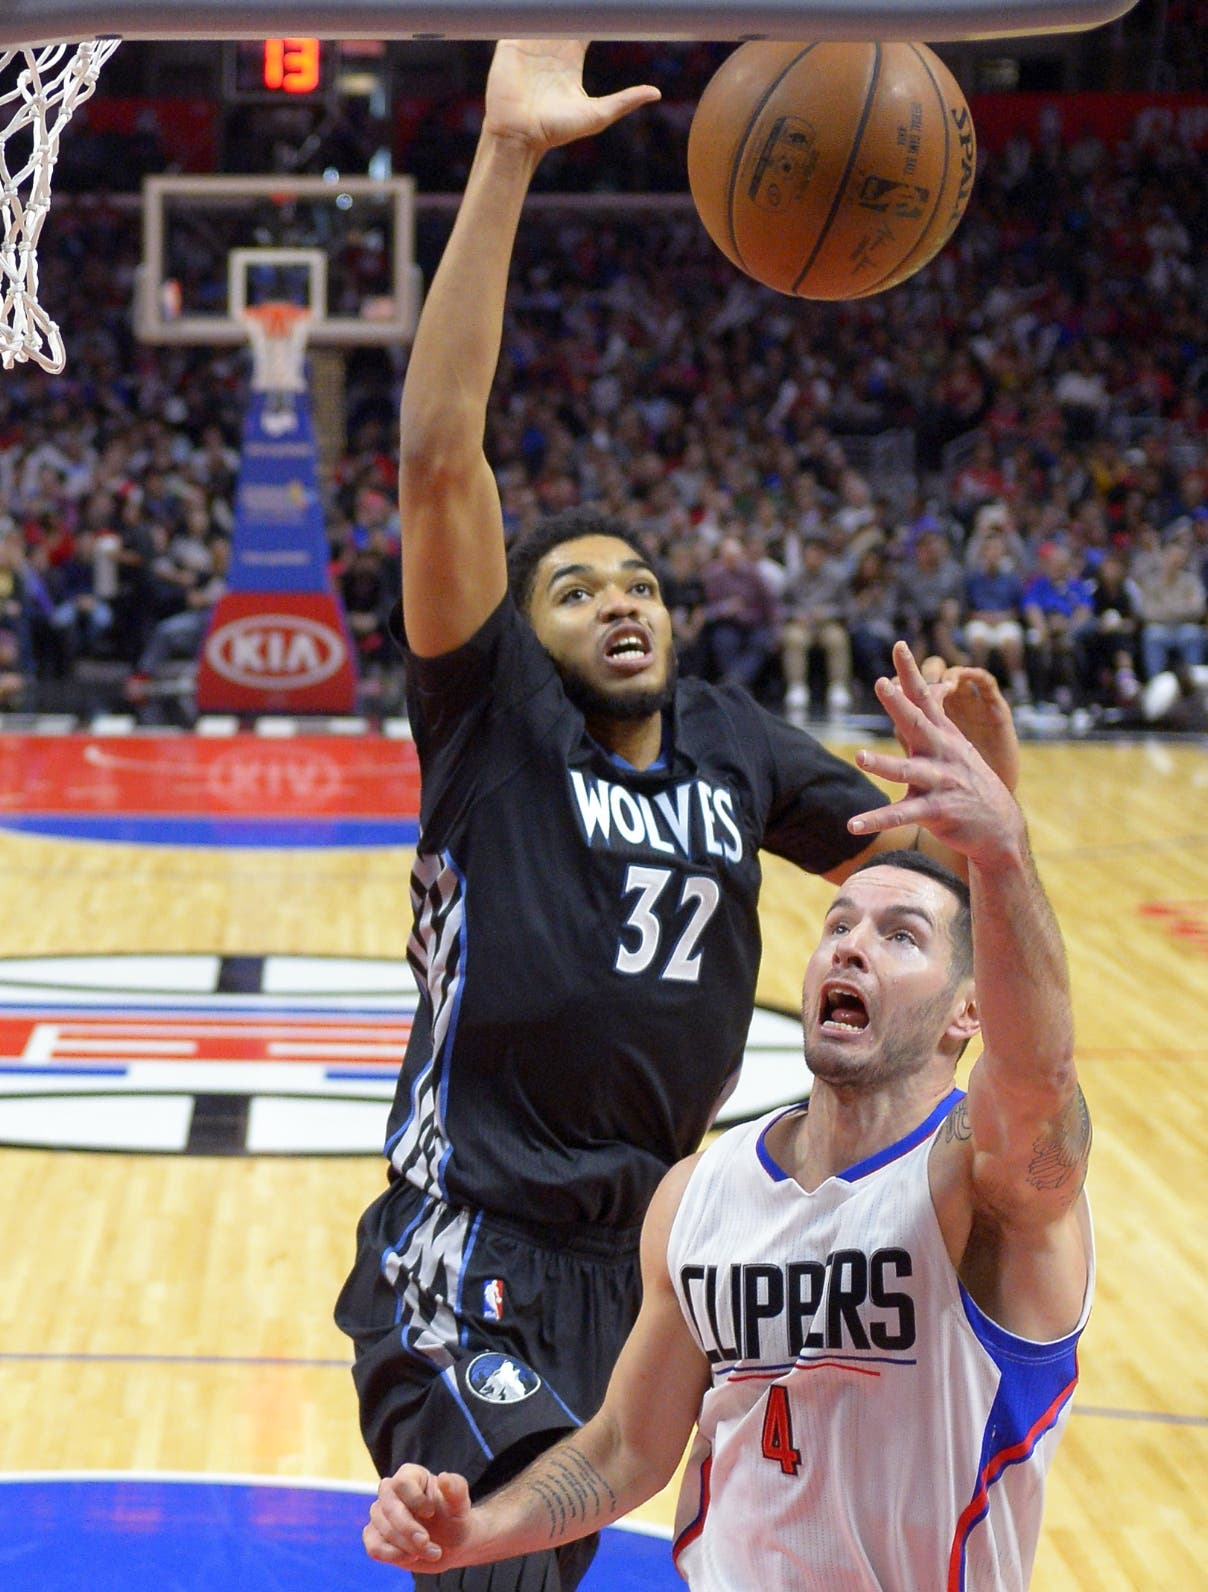 J.J. Redick, Karl-Anthony Towns